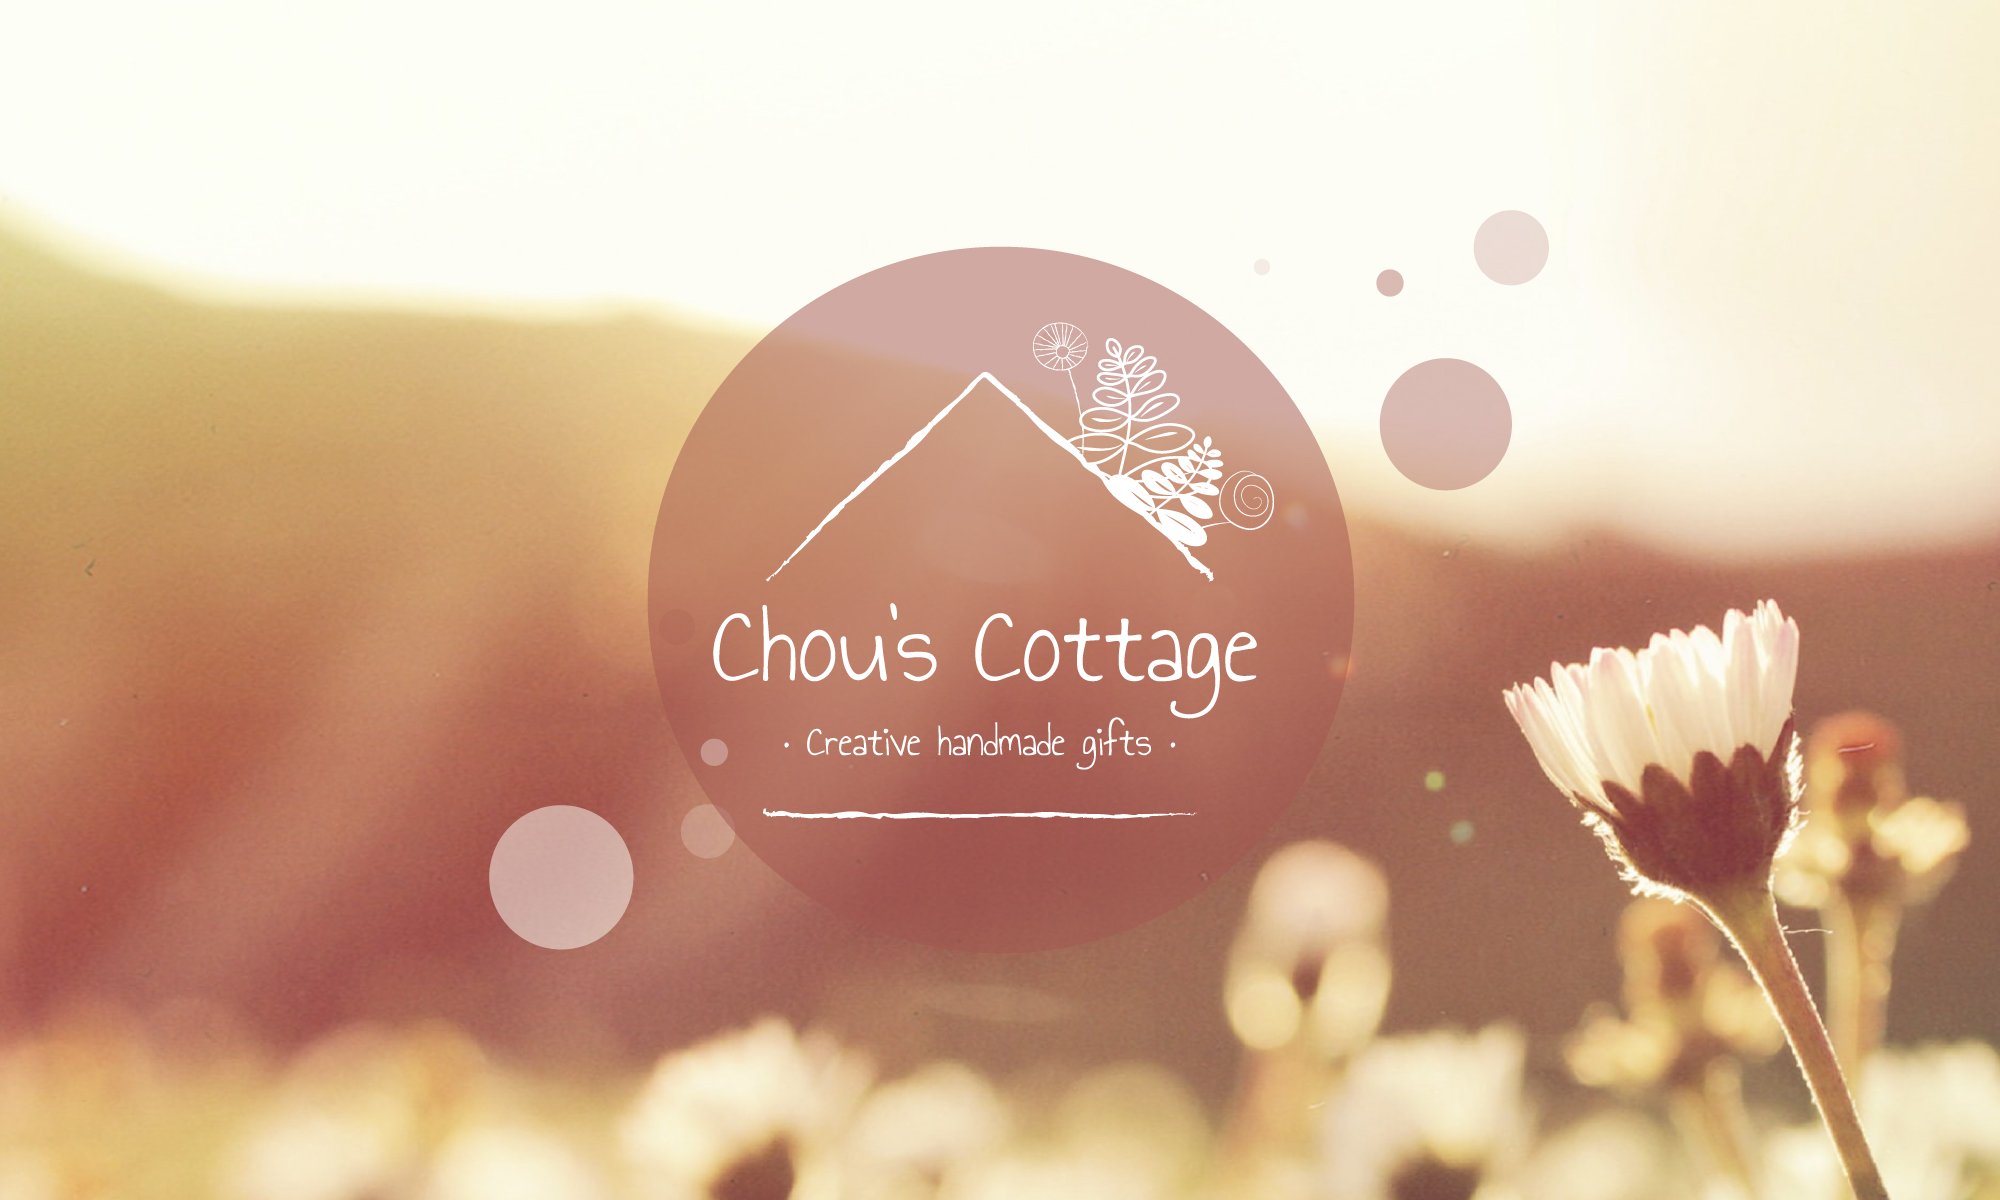 Chou's Cottage